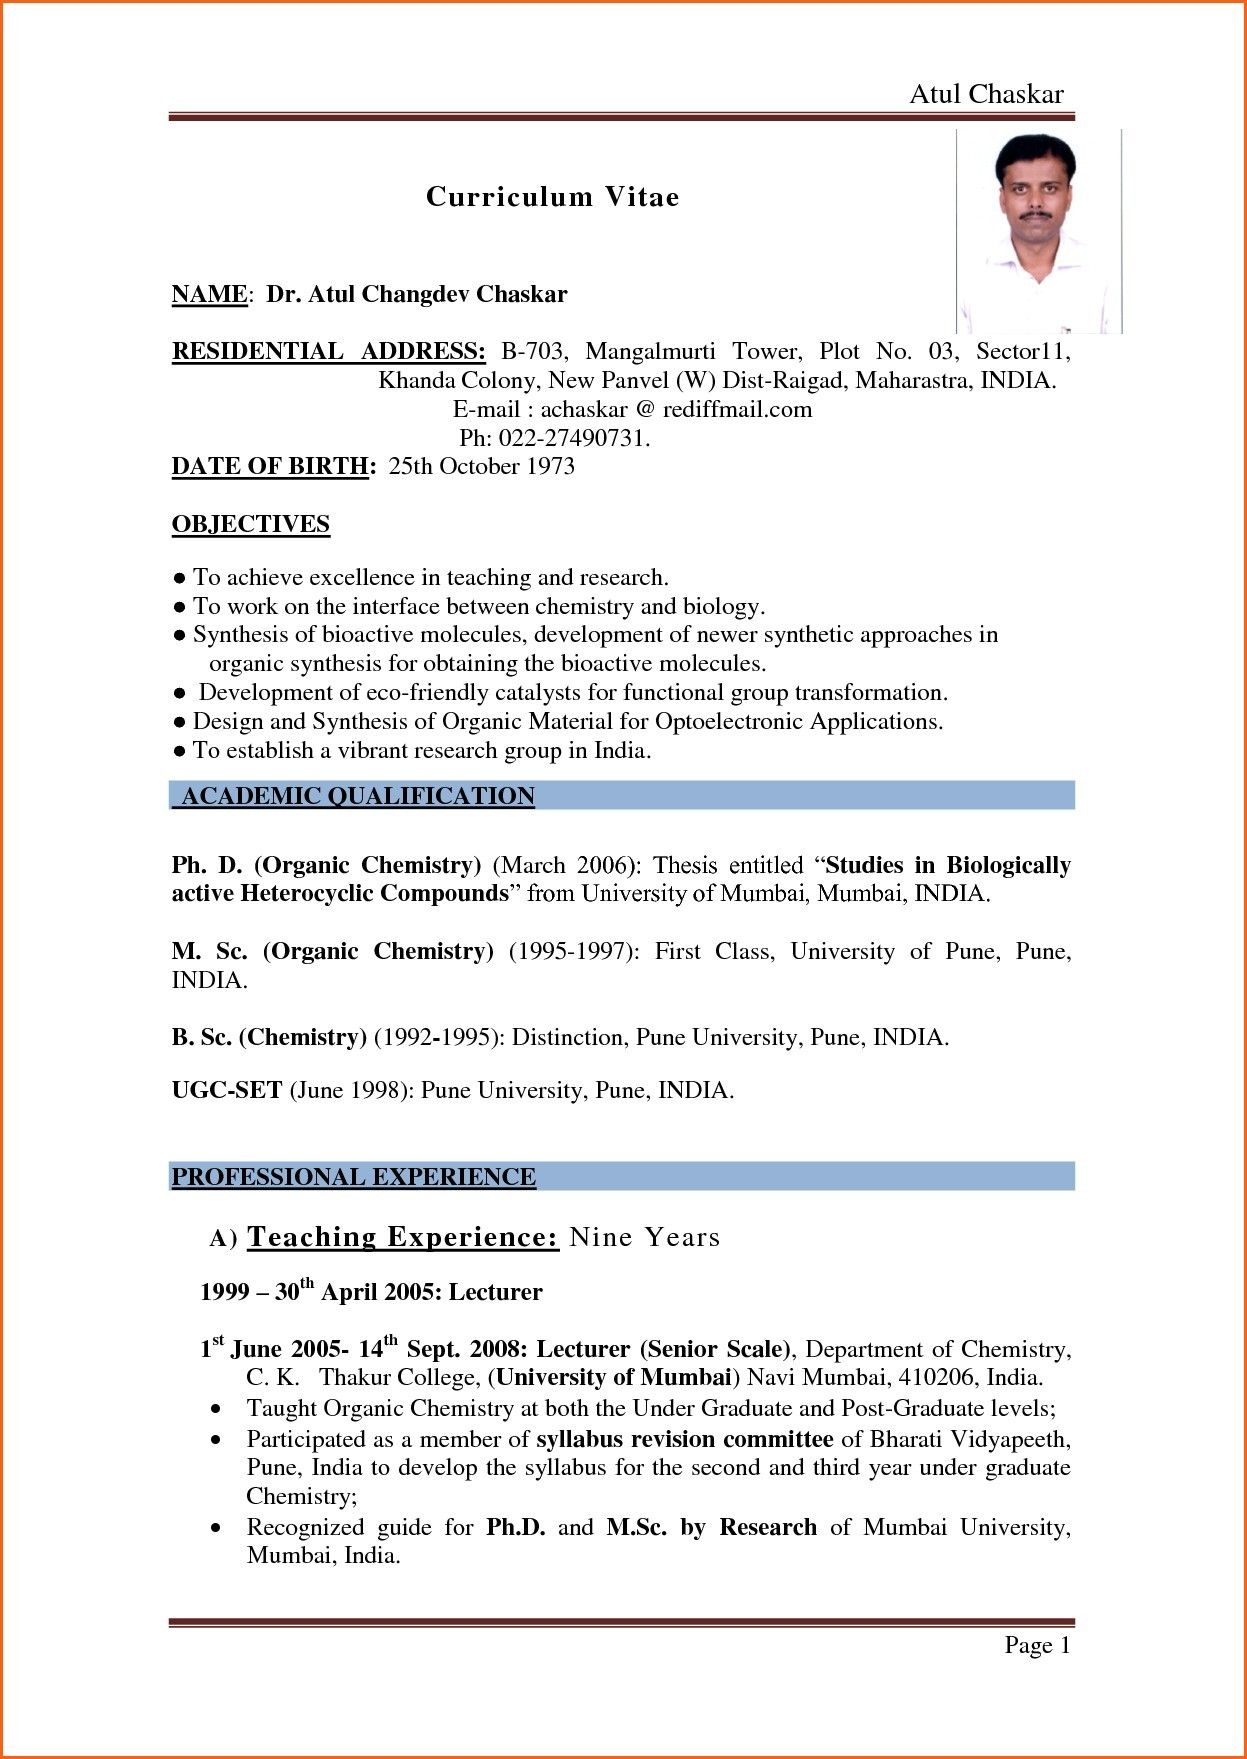 Sample Resume For Teachers In India Pdf At Ideas Rh Cheapjordanretros Us Cv Phd Application